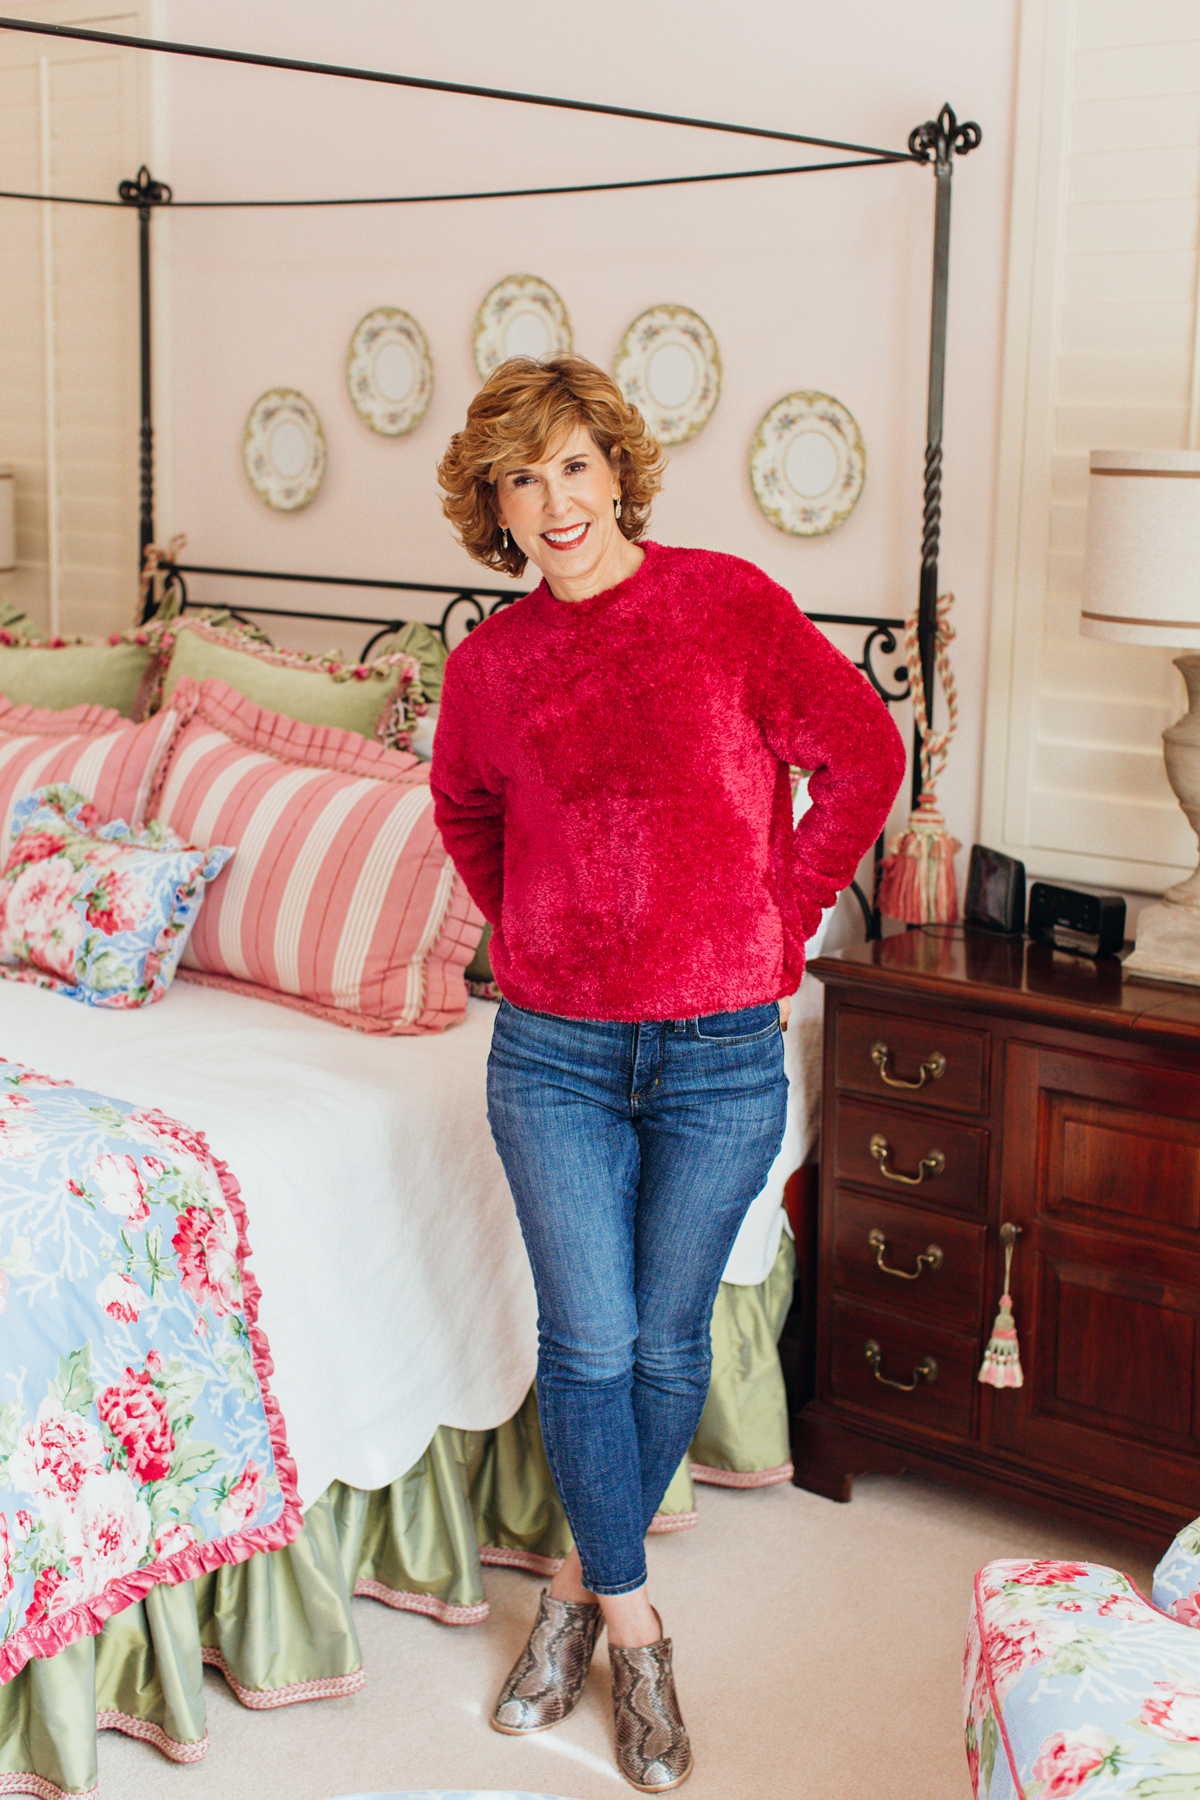 woman in pink fuzzy sweater and jeans posing in her bedroom